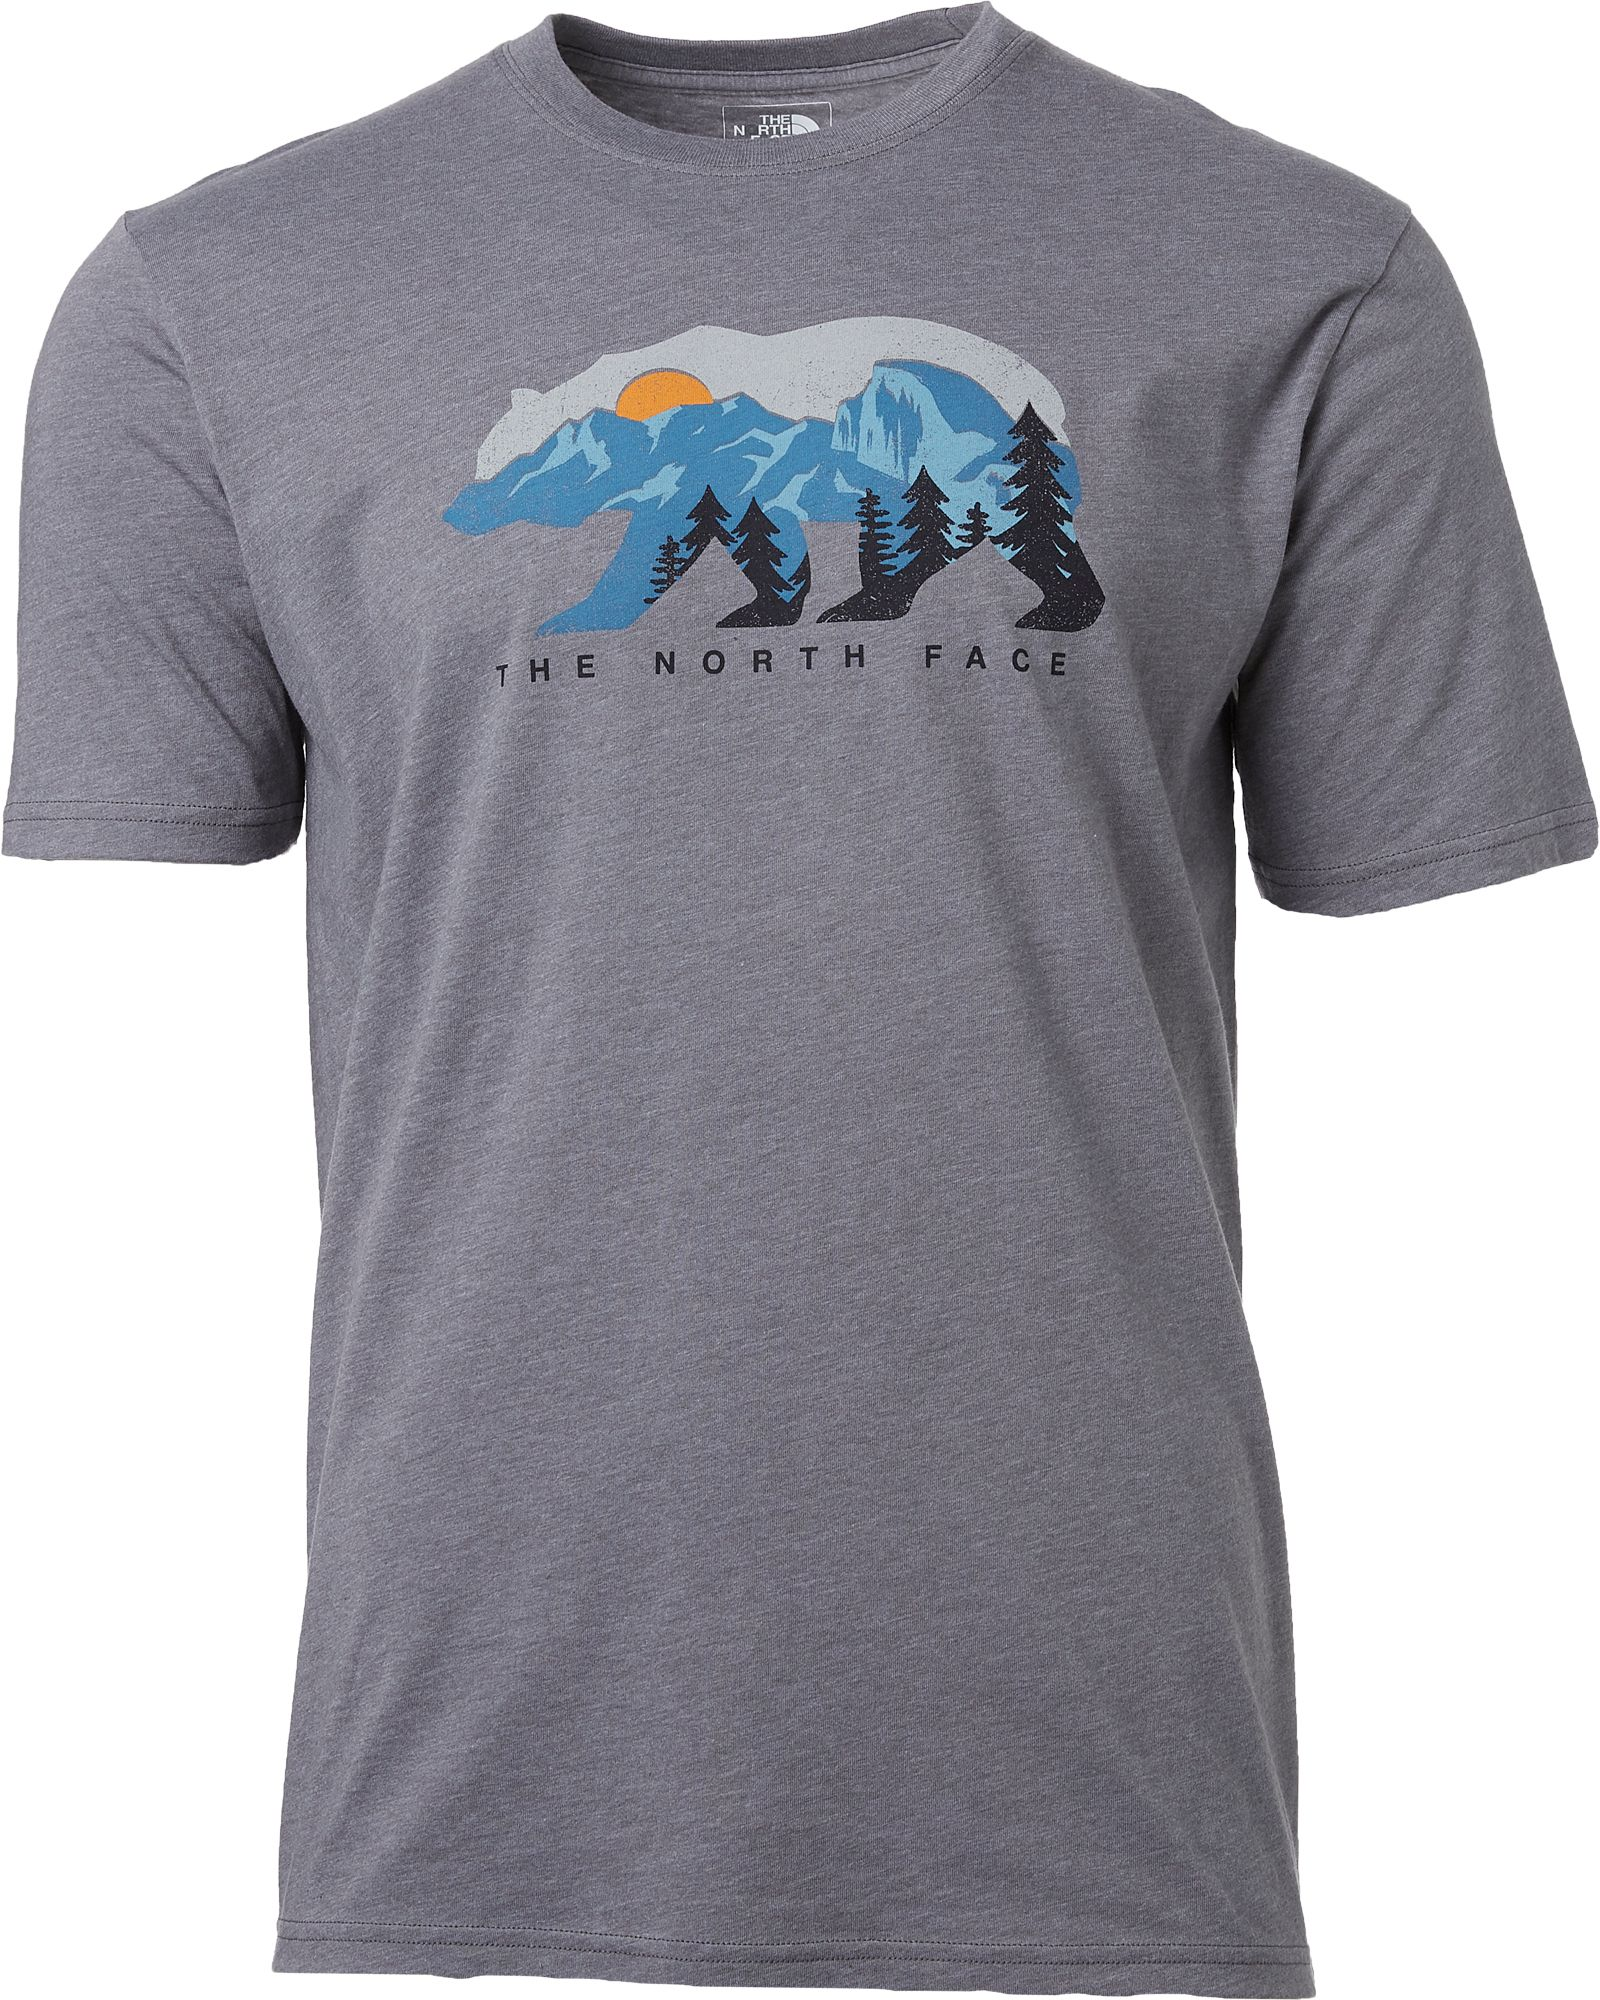 4e10c7a42 The North Face Men's Bearitage Rights T-Shirt in 2019 | Products ...